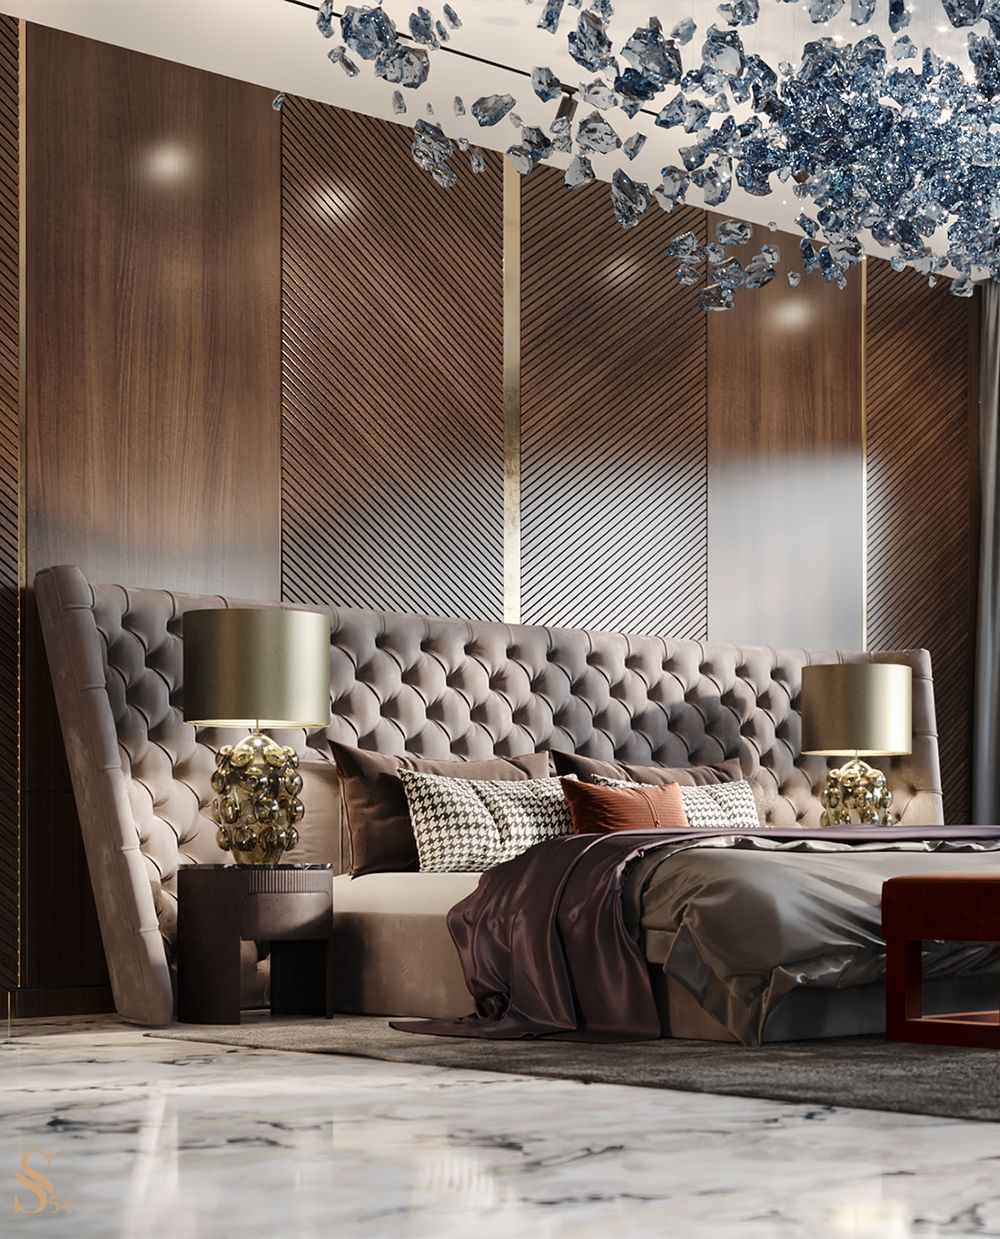 Decor Ideas To Achieve A Marvelous Bedroom Design in 2021 ...